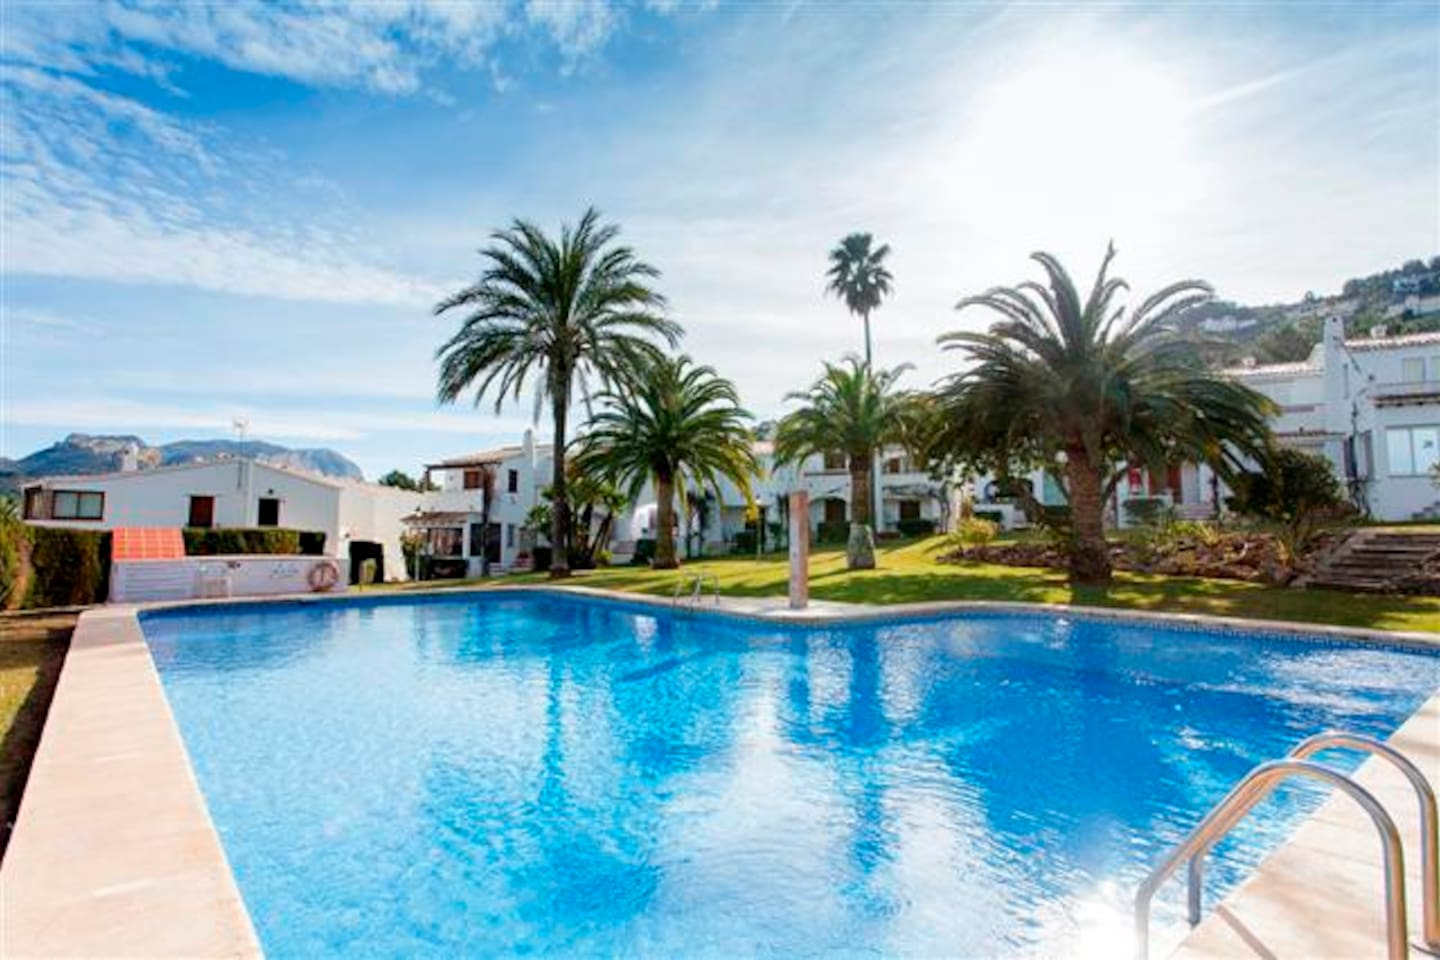 Beautiful 1 bedroomed apartment on ground floor that overlooks the pool. Within walking distance of shop and restaurant.  Private parking.  Separate bedroom.  Modern shower room and kitchen. The gardens are quiet and well maintained.  Sun beds.